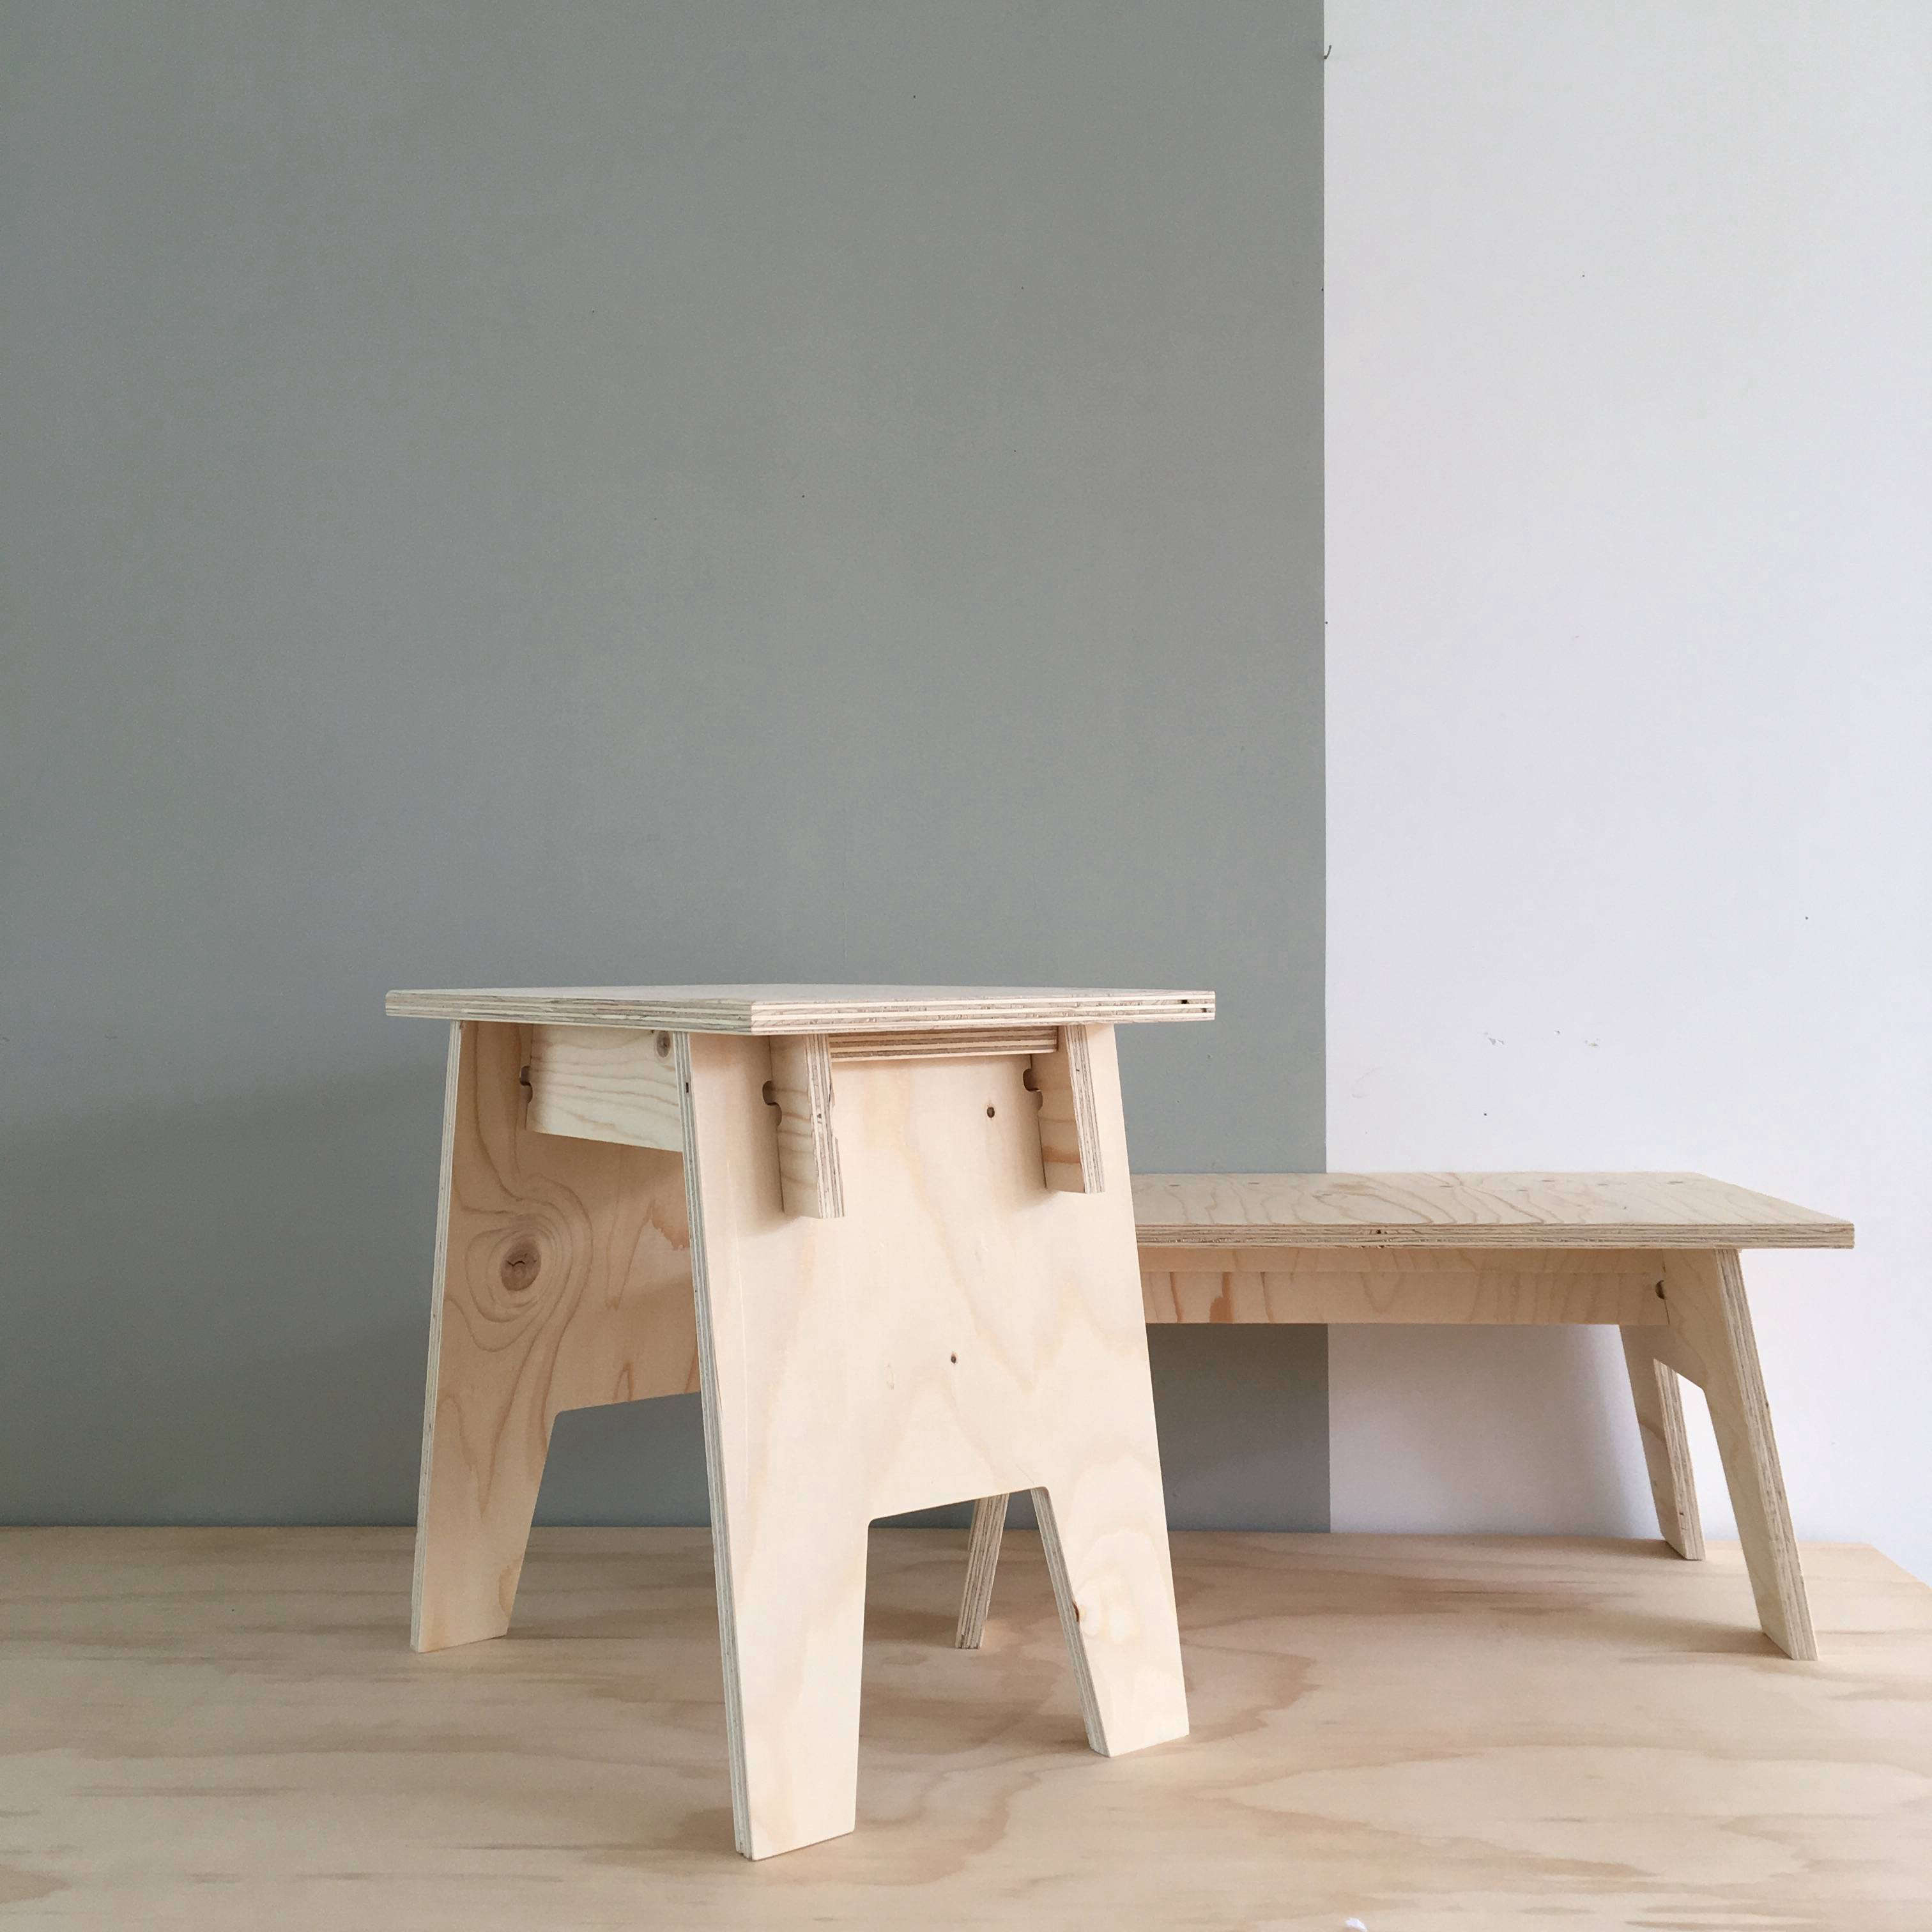 simple honest furniture from woodchuck in the netherlands